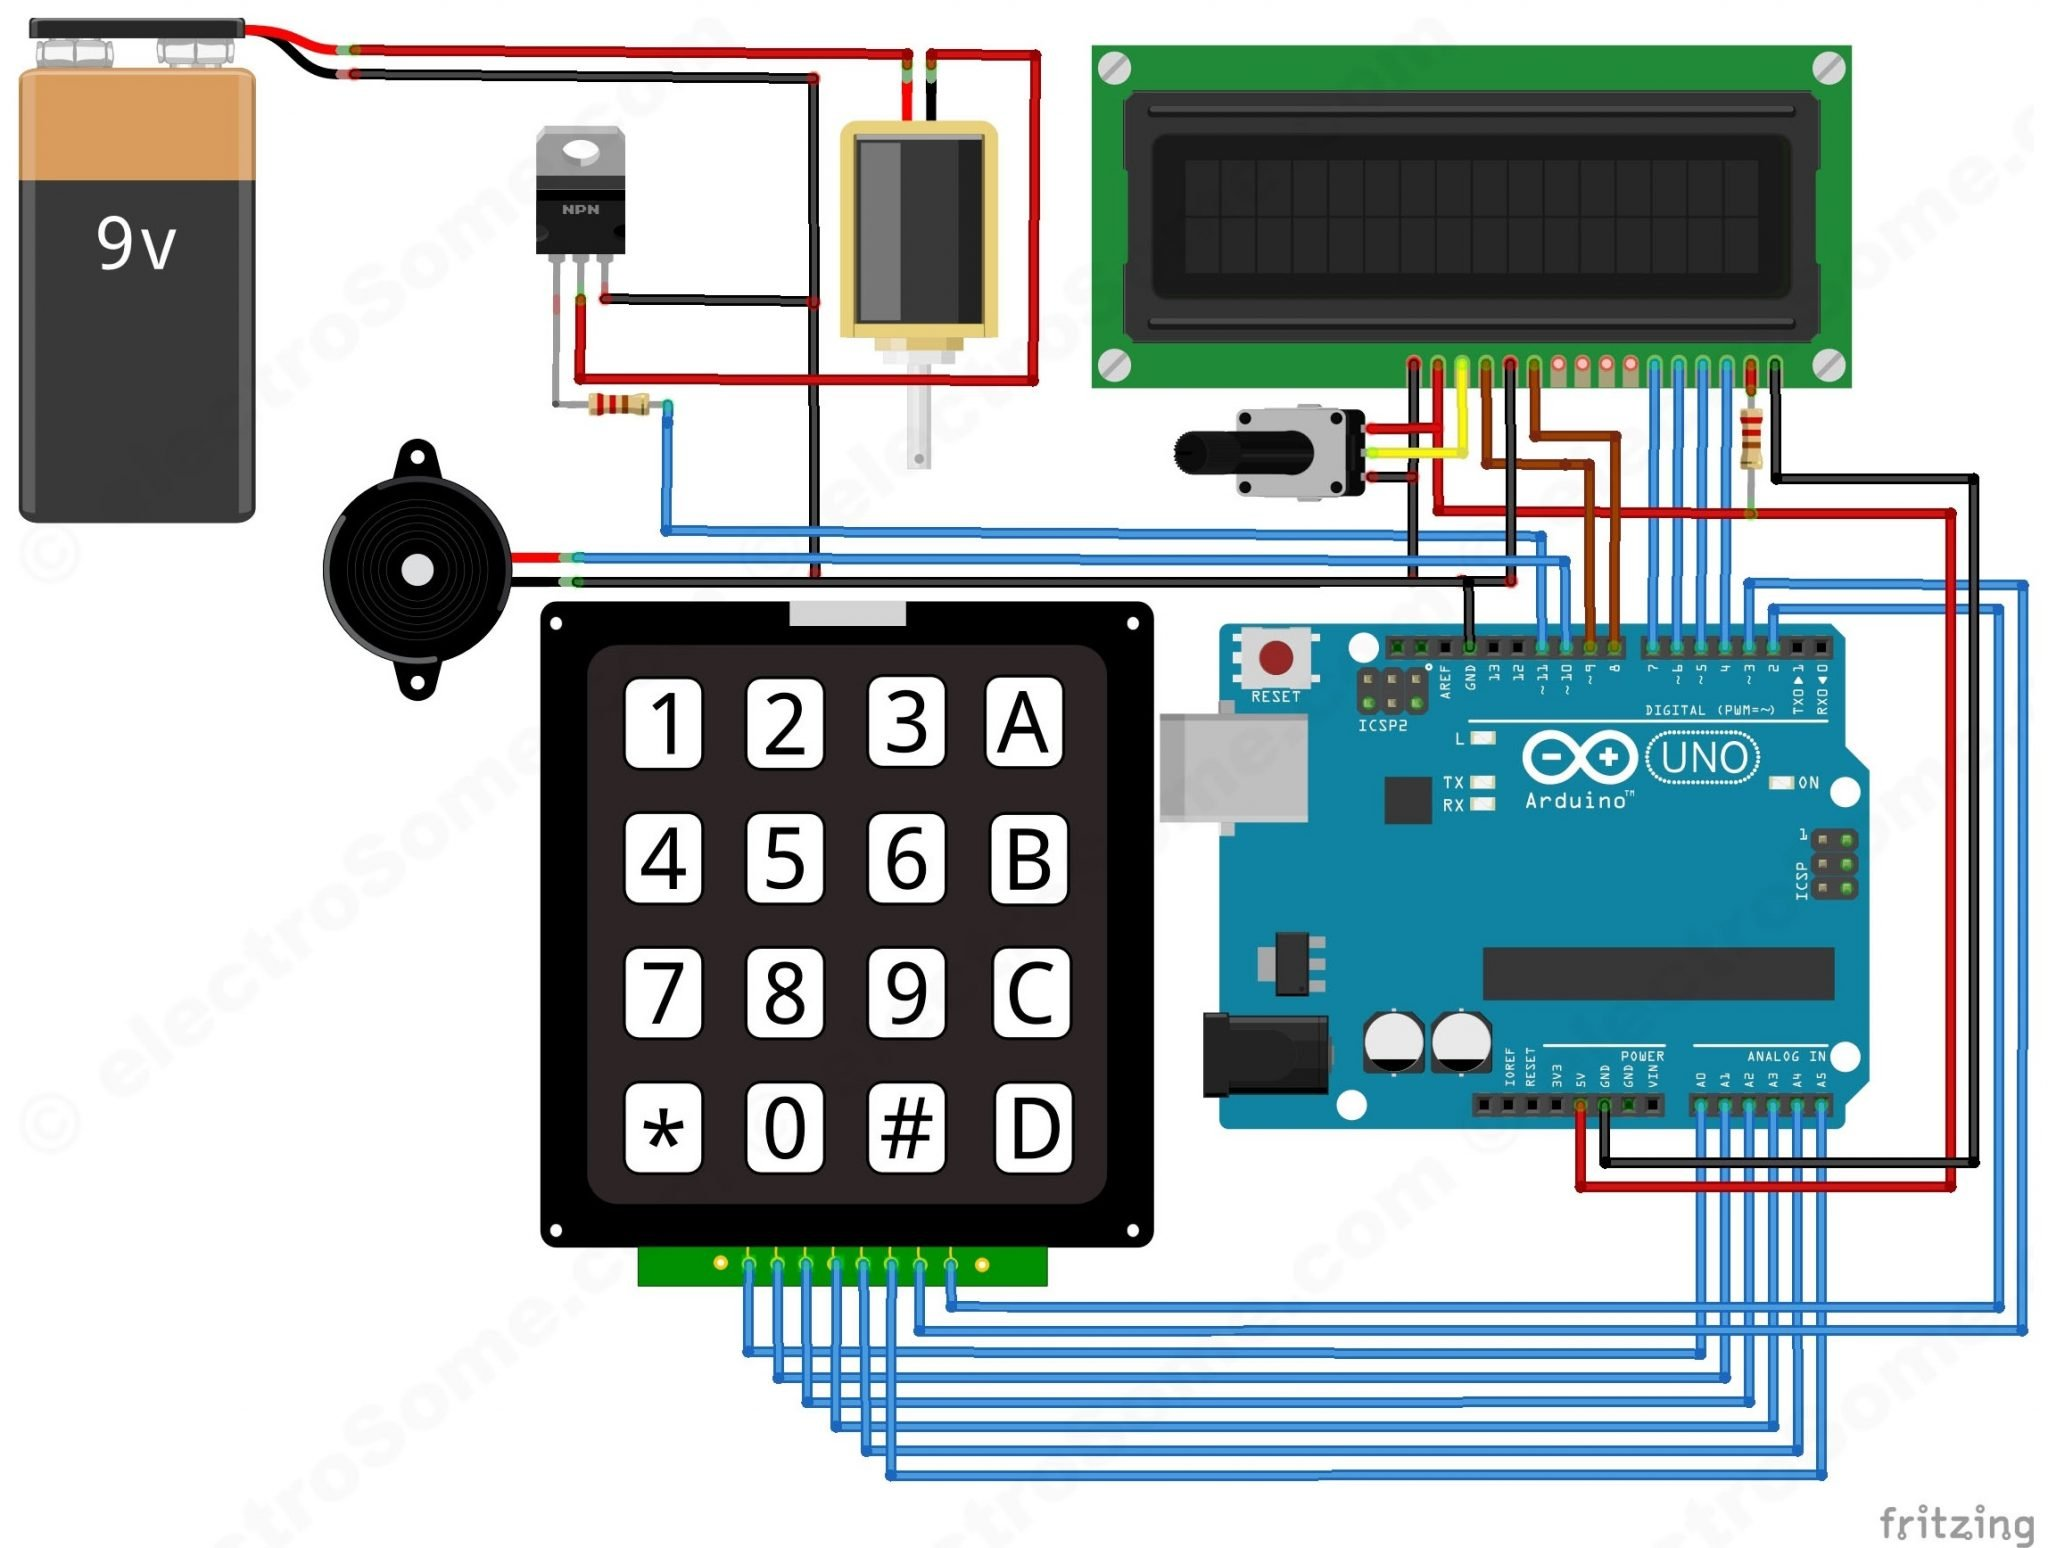 potentiometer motor control wiring diagram with Door Lock Arduino on Dim12hp additionally Astra G Wiper Motor Wiring Diagram likewise Modify Ac Dimmer To Automatic Light Switch Controller additionally EXP 3 likewise Danfoss Vlt Micro Drive Fc 51.